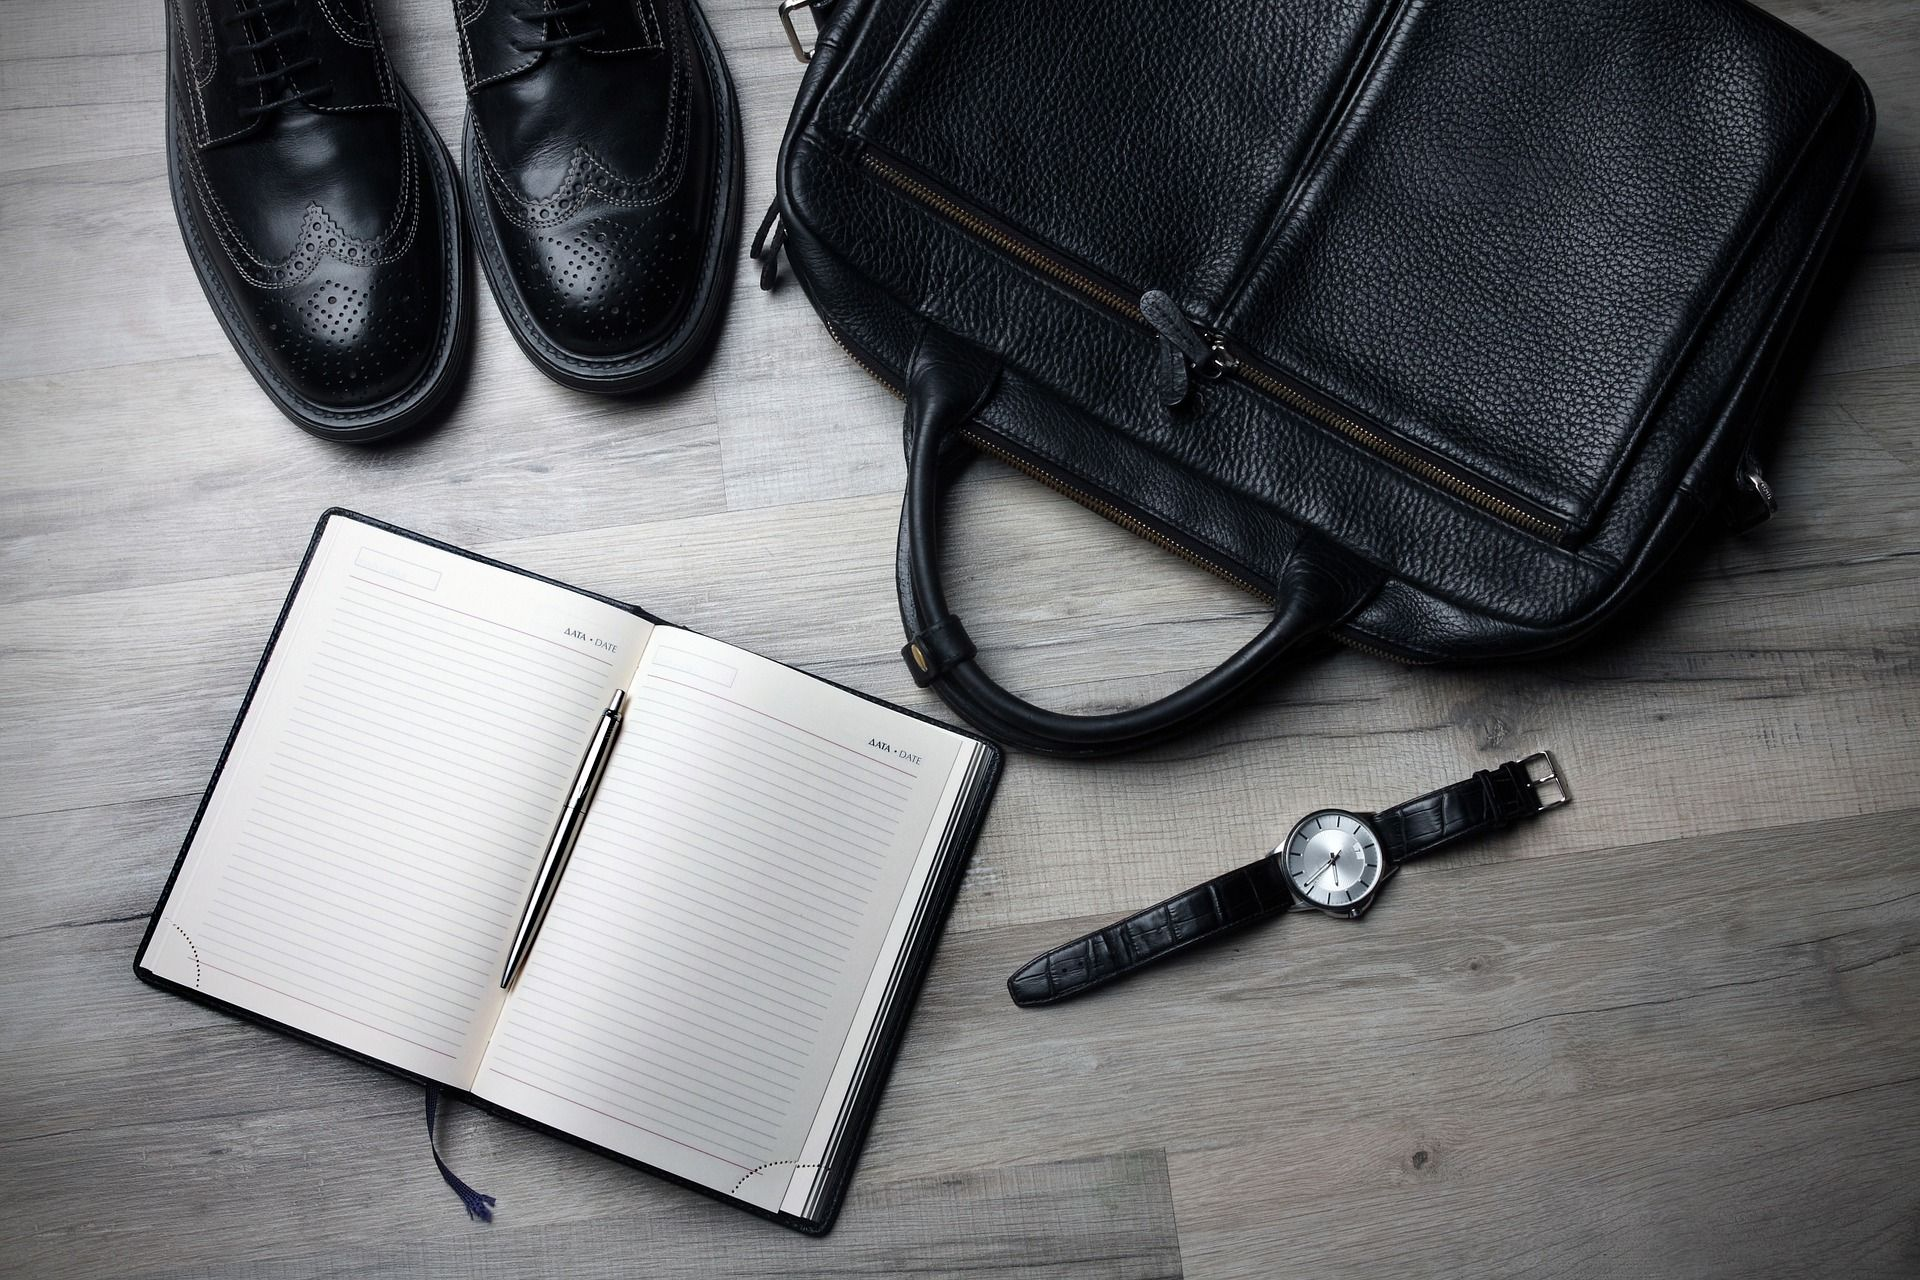 Smart shoes and work bag on the floor